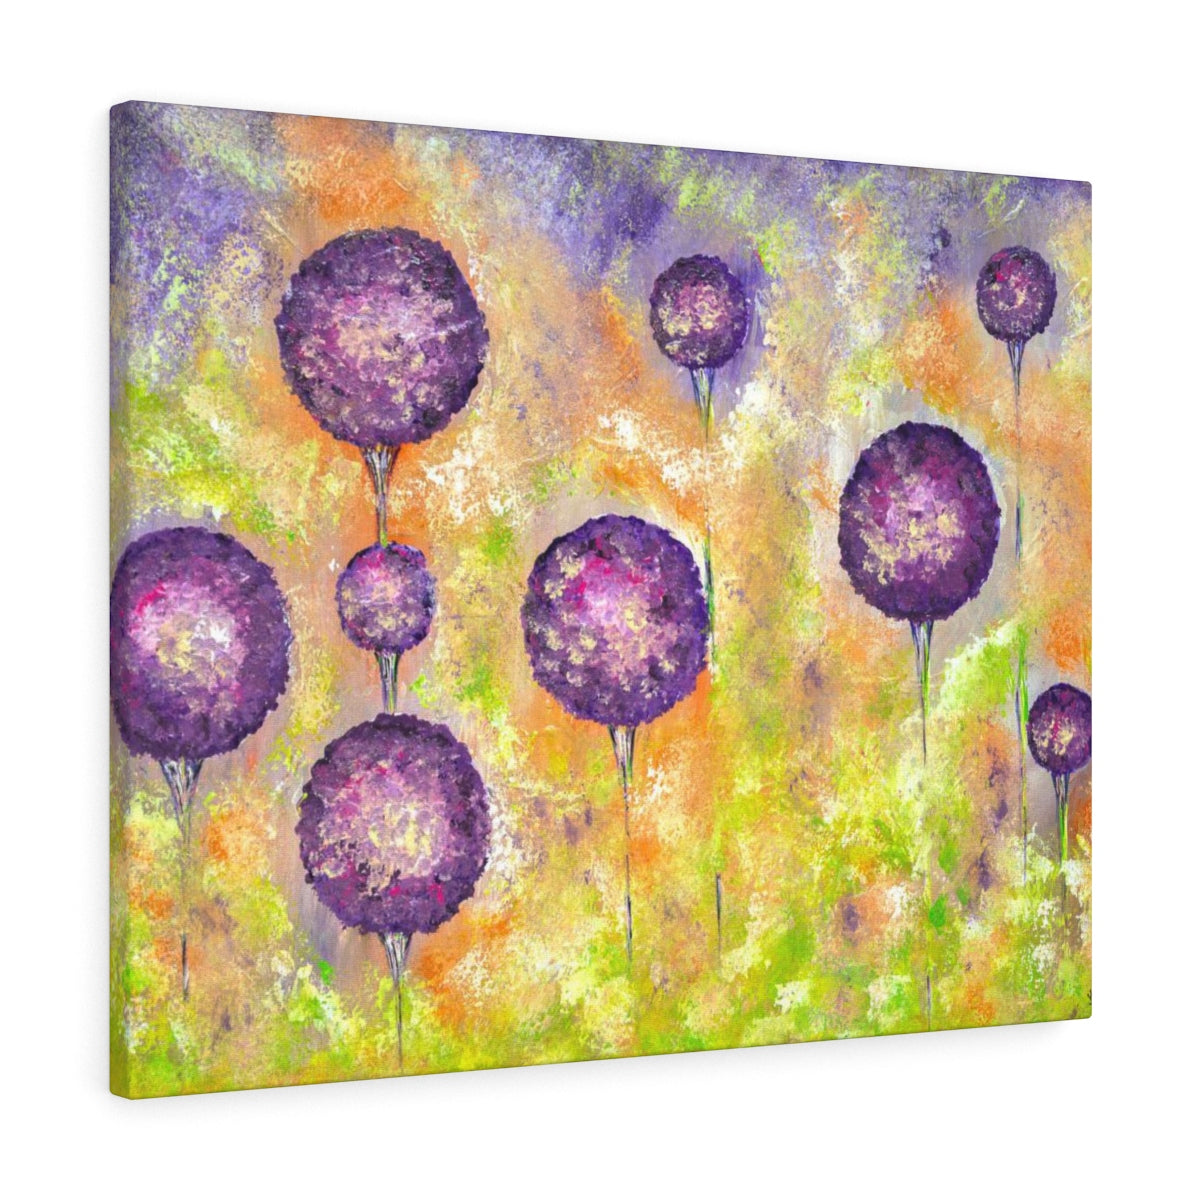 Flower Canvas Print - Purple Floral Painting | Brandless Artist